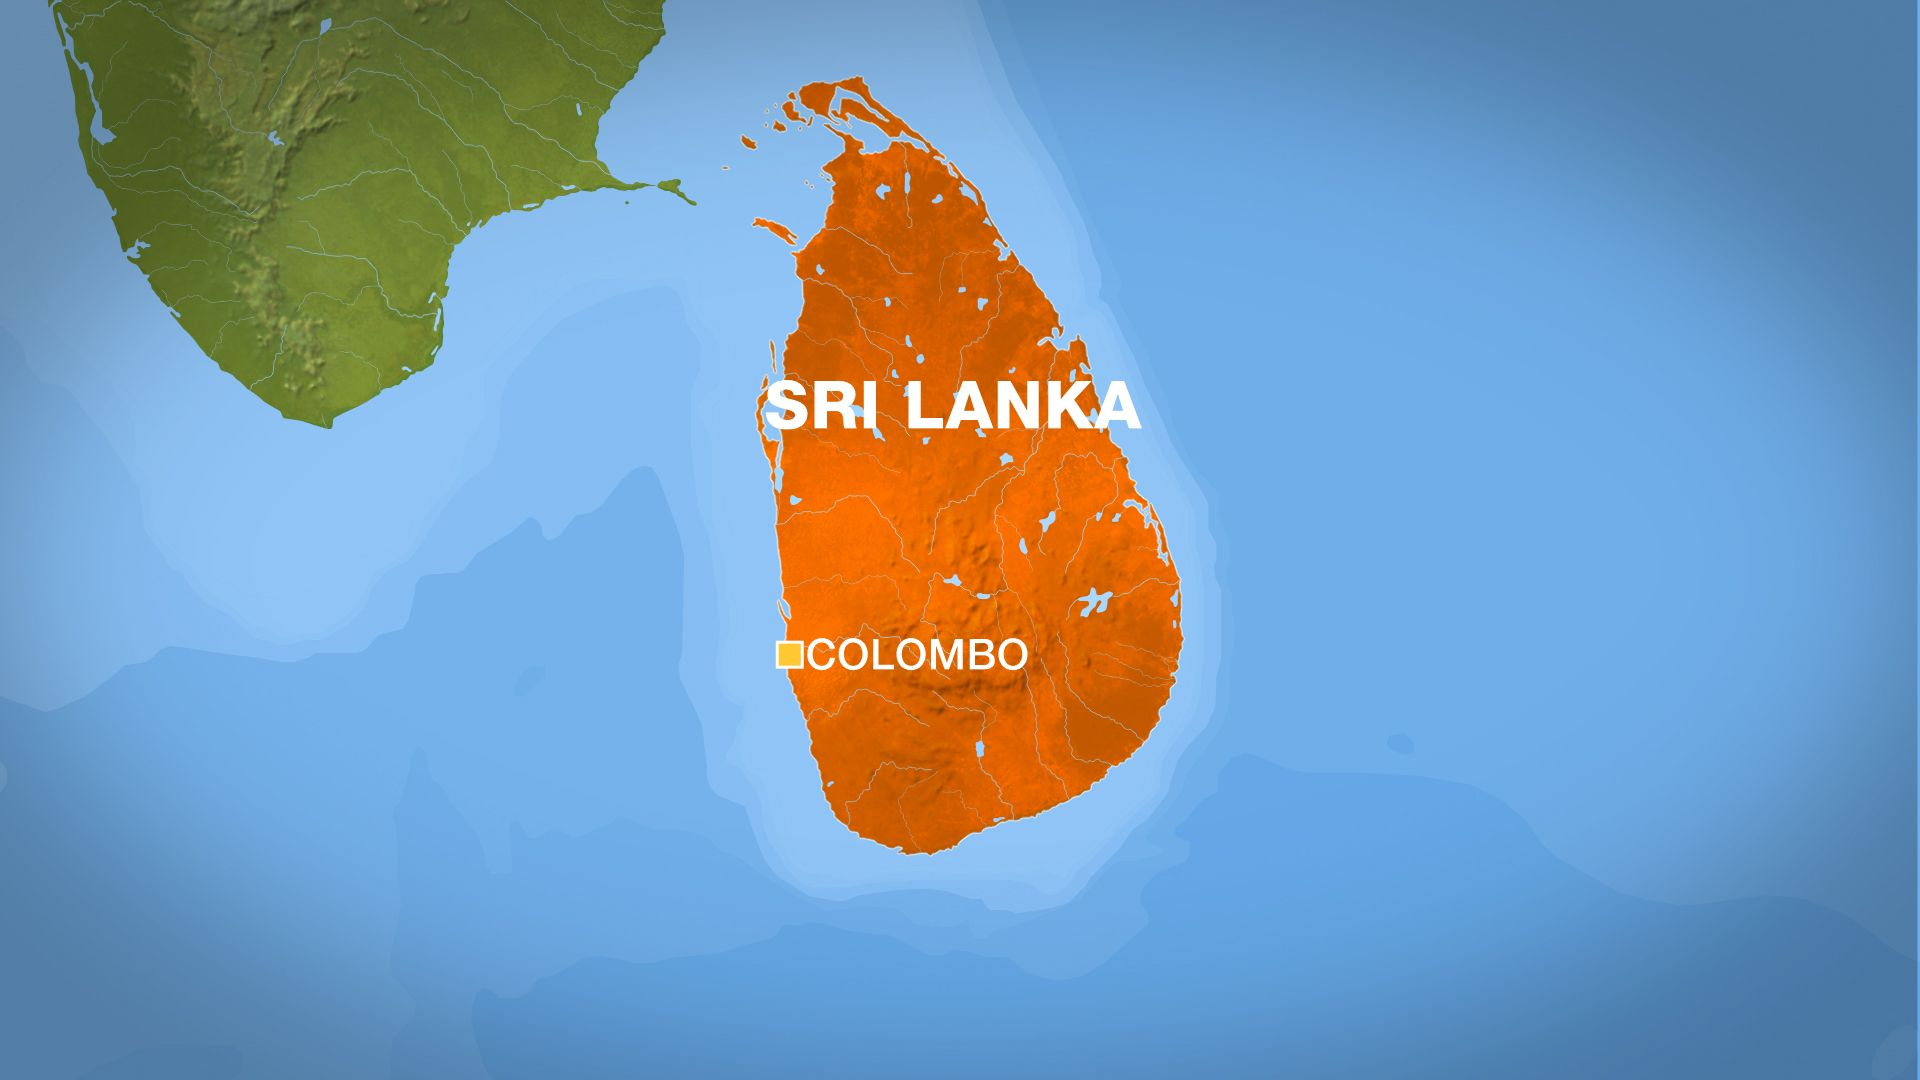 Sri Lanka floods: 90 people dead, India rushes relief material